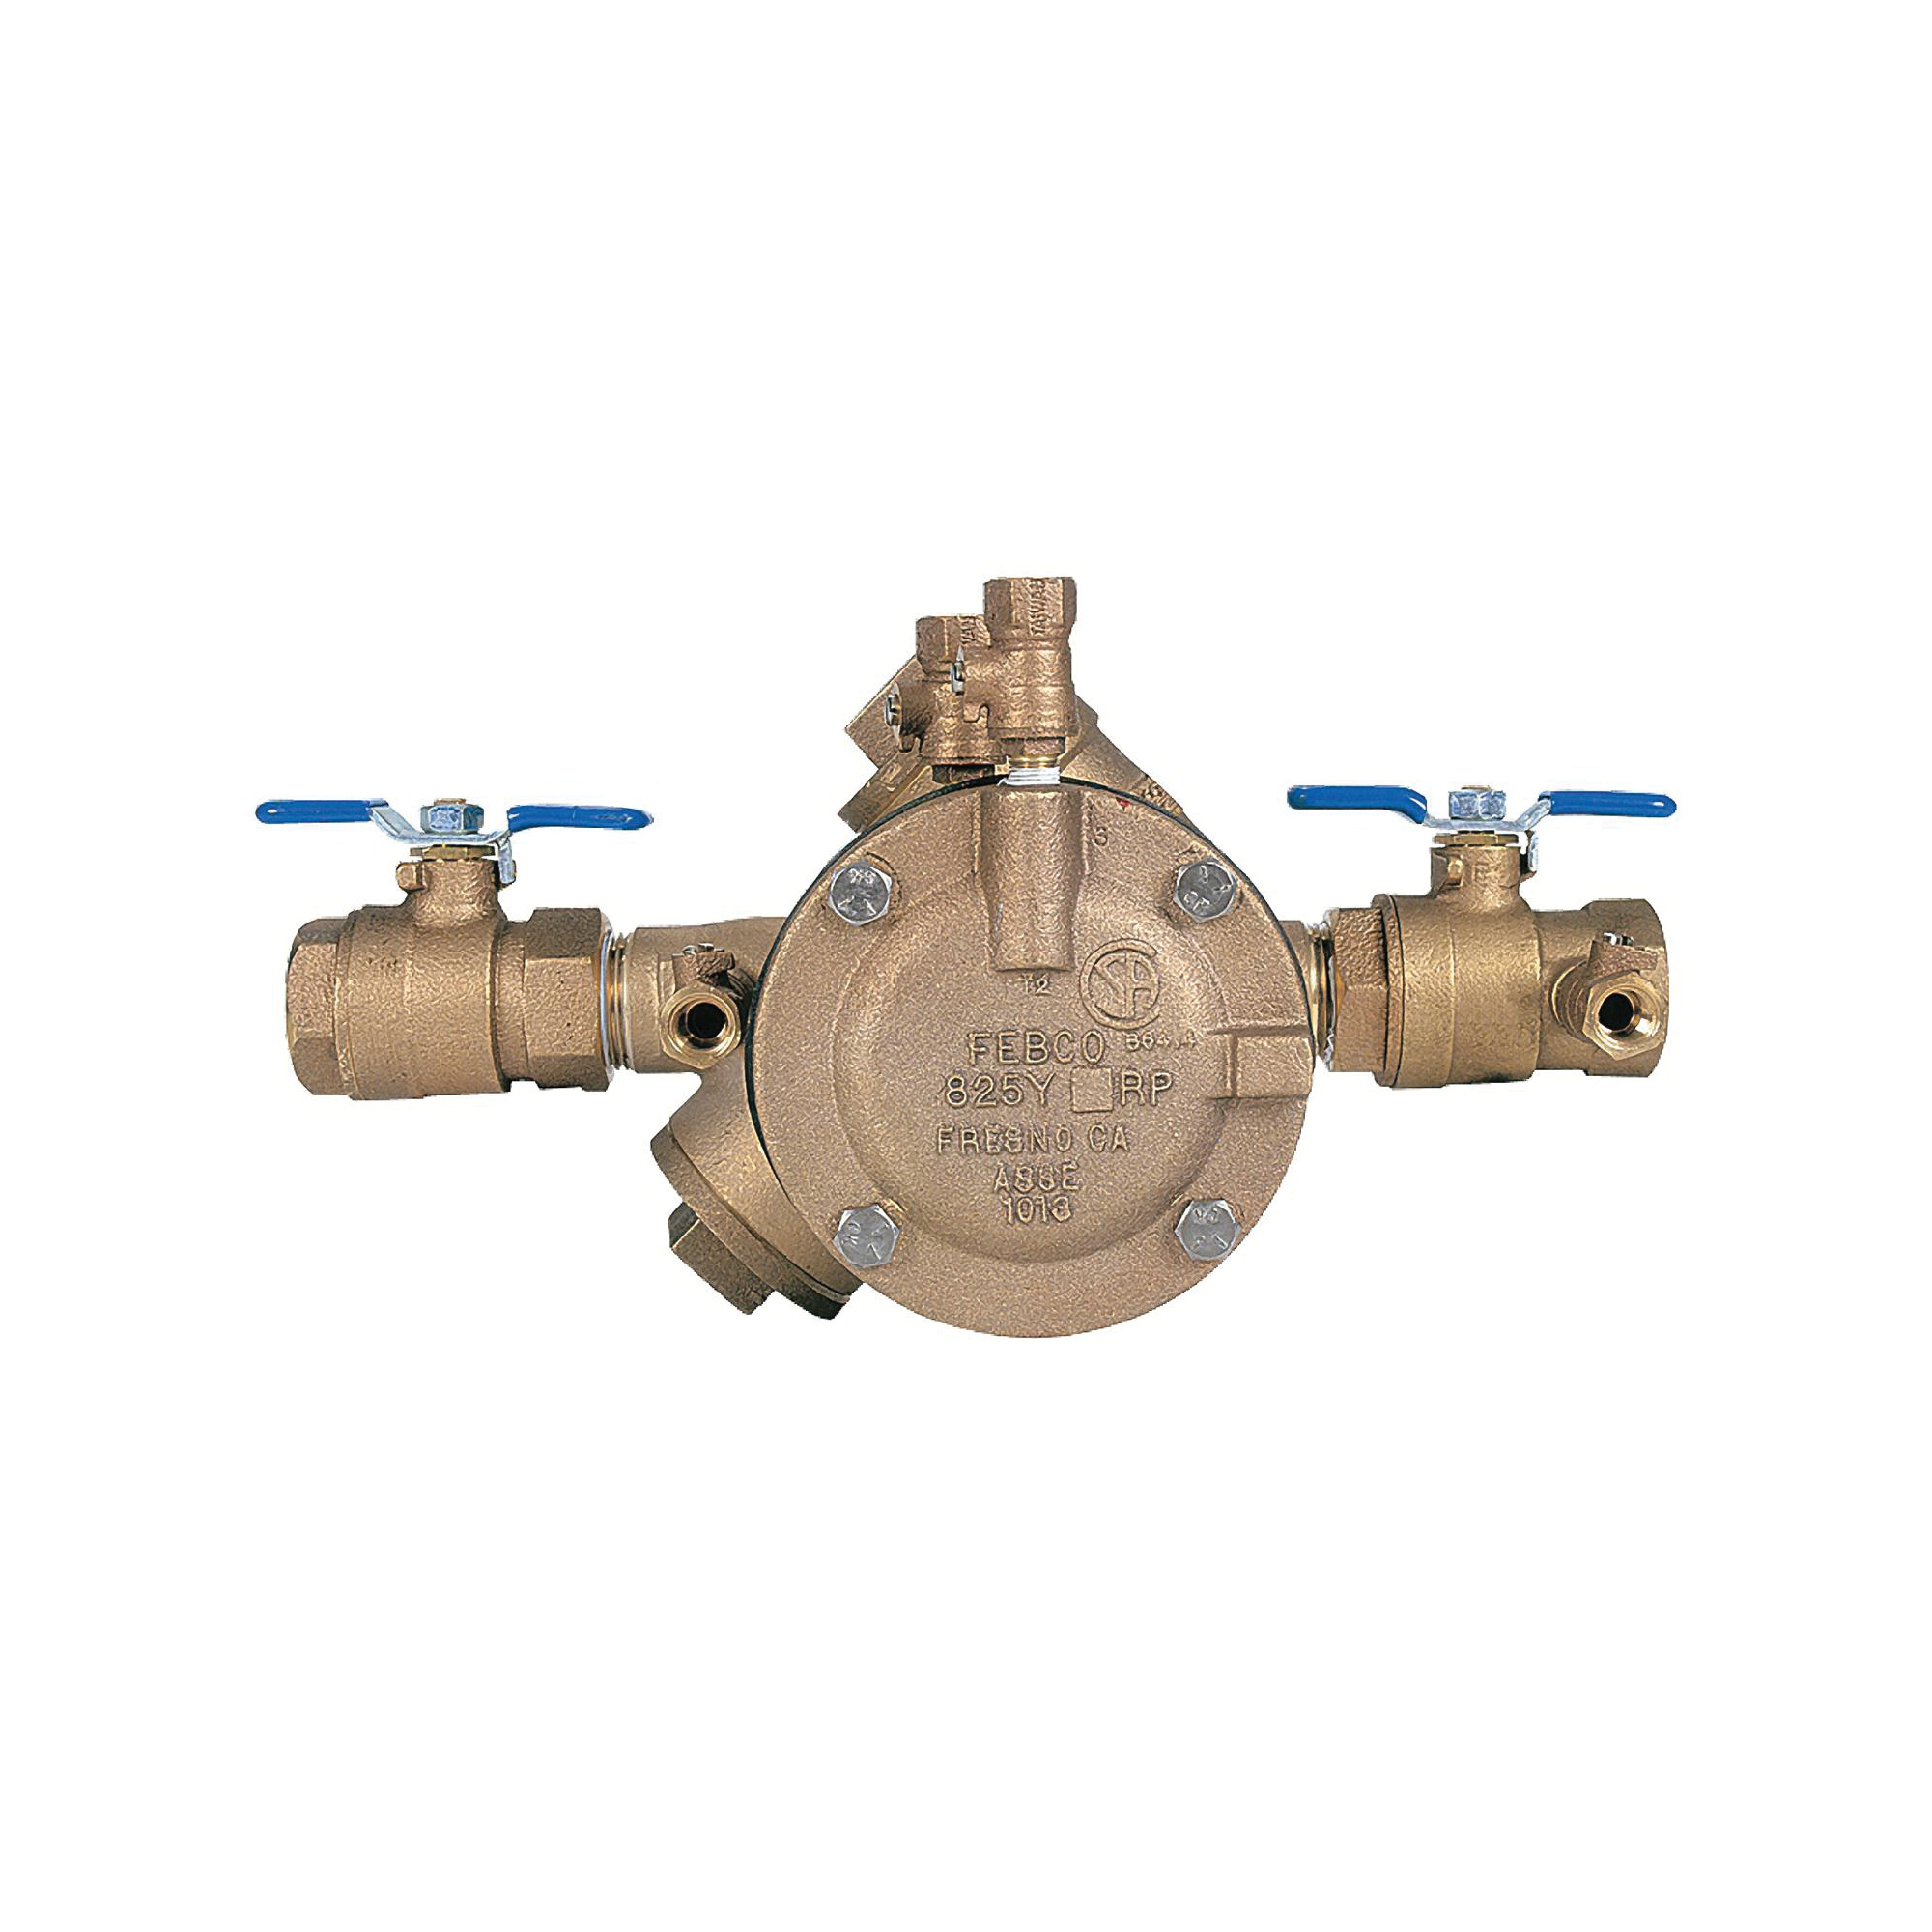 Febco® 0683009 LF825Y Y-Pattern Reduced Pressure Zone Assembly, 1-1/2 in, Thread, Quarter-Turn Ball Valve, Cast Copper Silicon Alloy Body